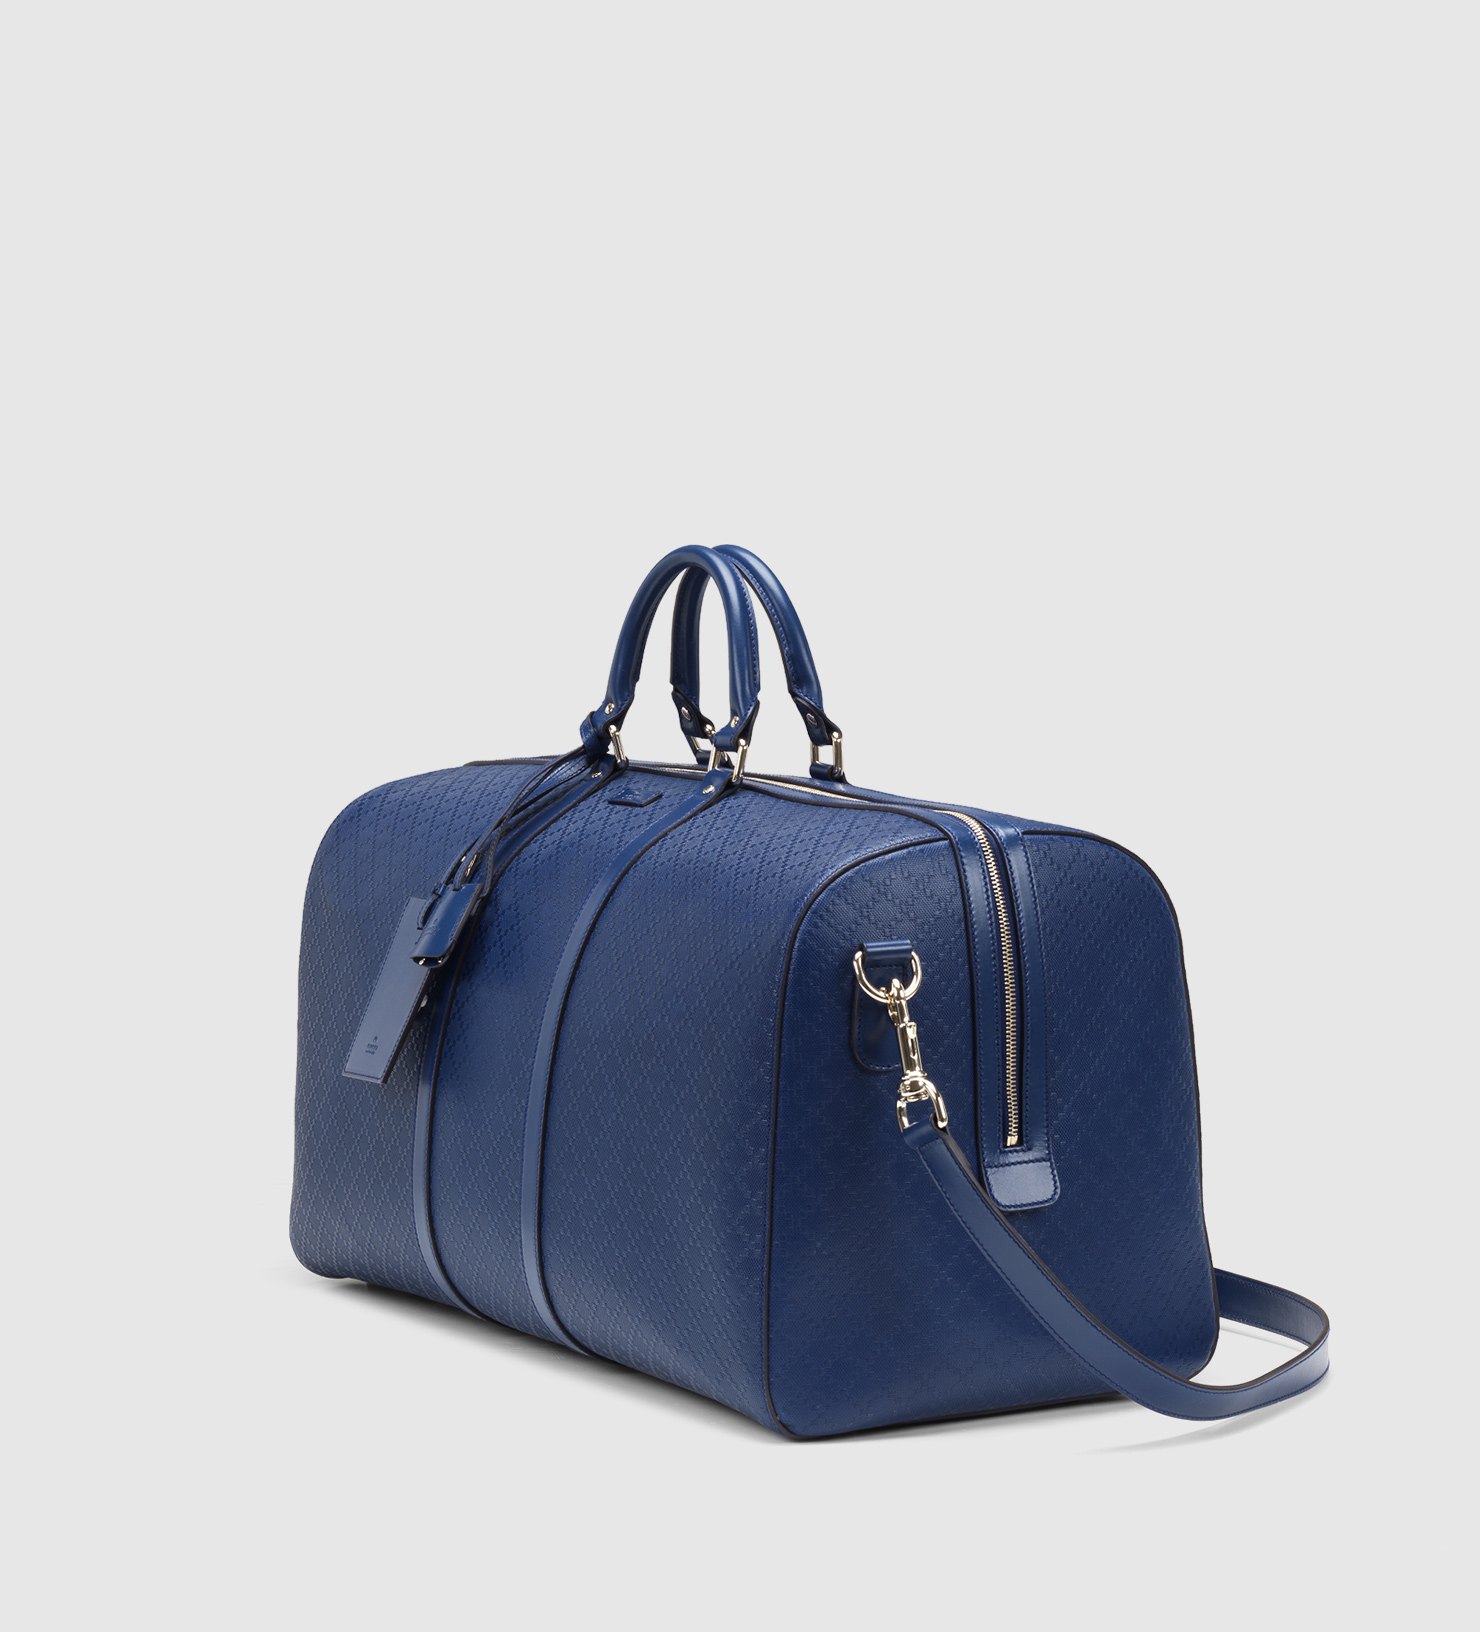 402620785ef4 Gucci Bright Diamante Leather Carry-on Duffle Bag in Blue for Men - Lyst